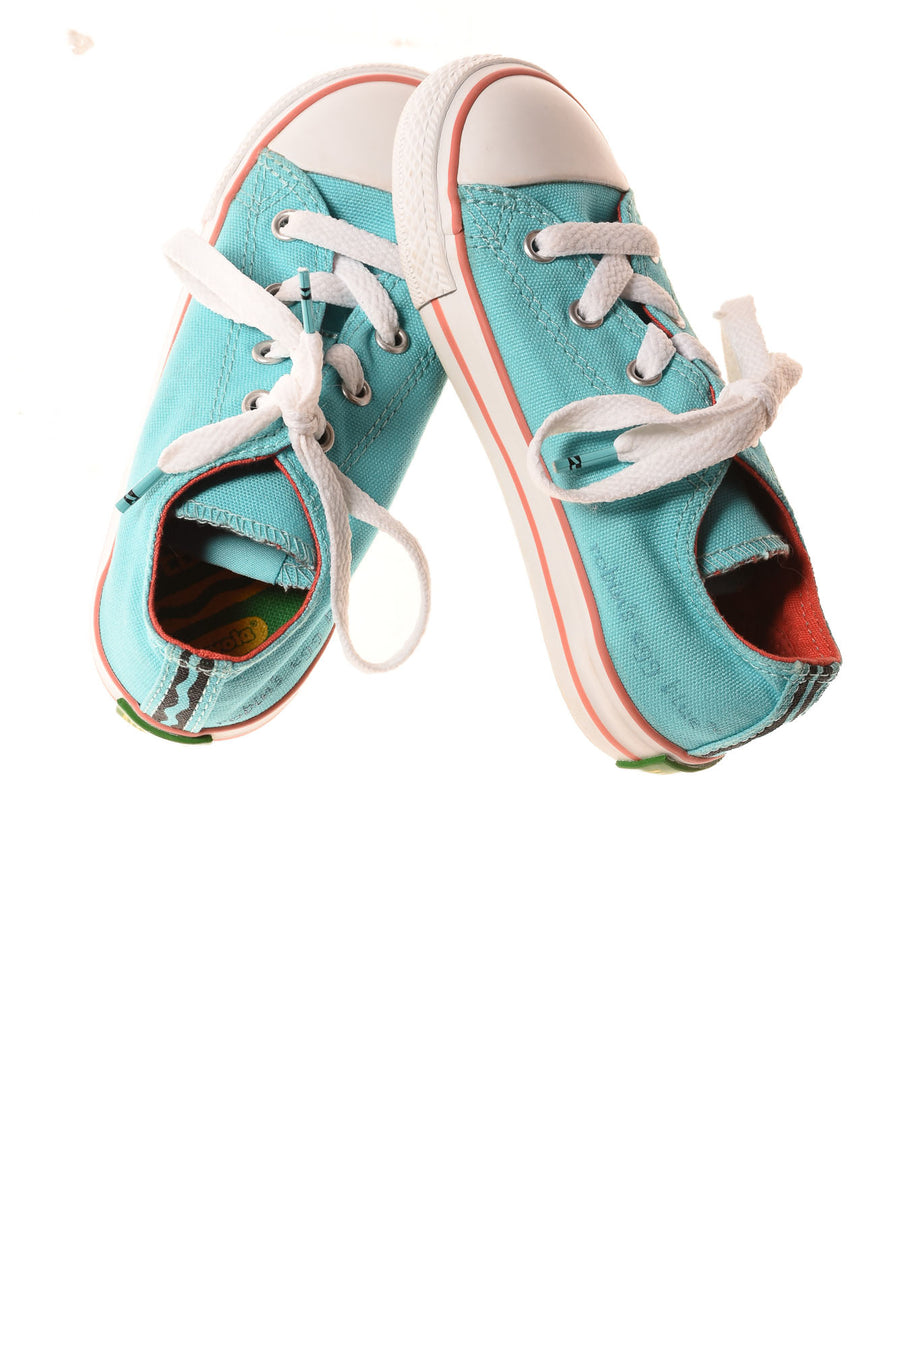 USED Converse Girl's Shoes 9 Robin Egg Blue